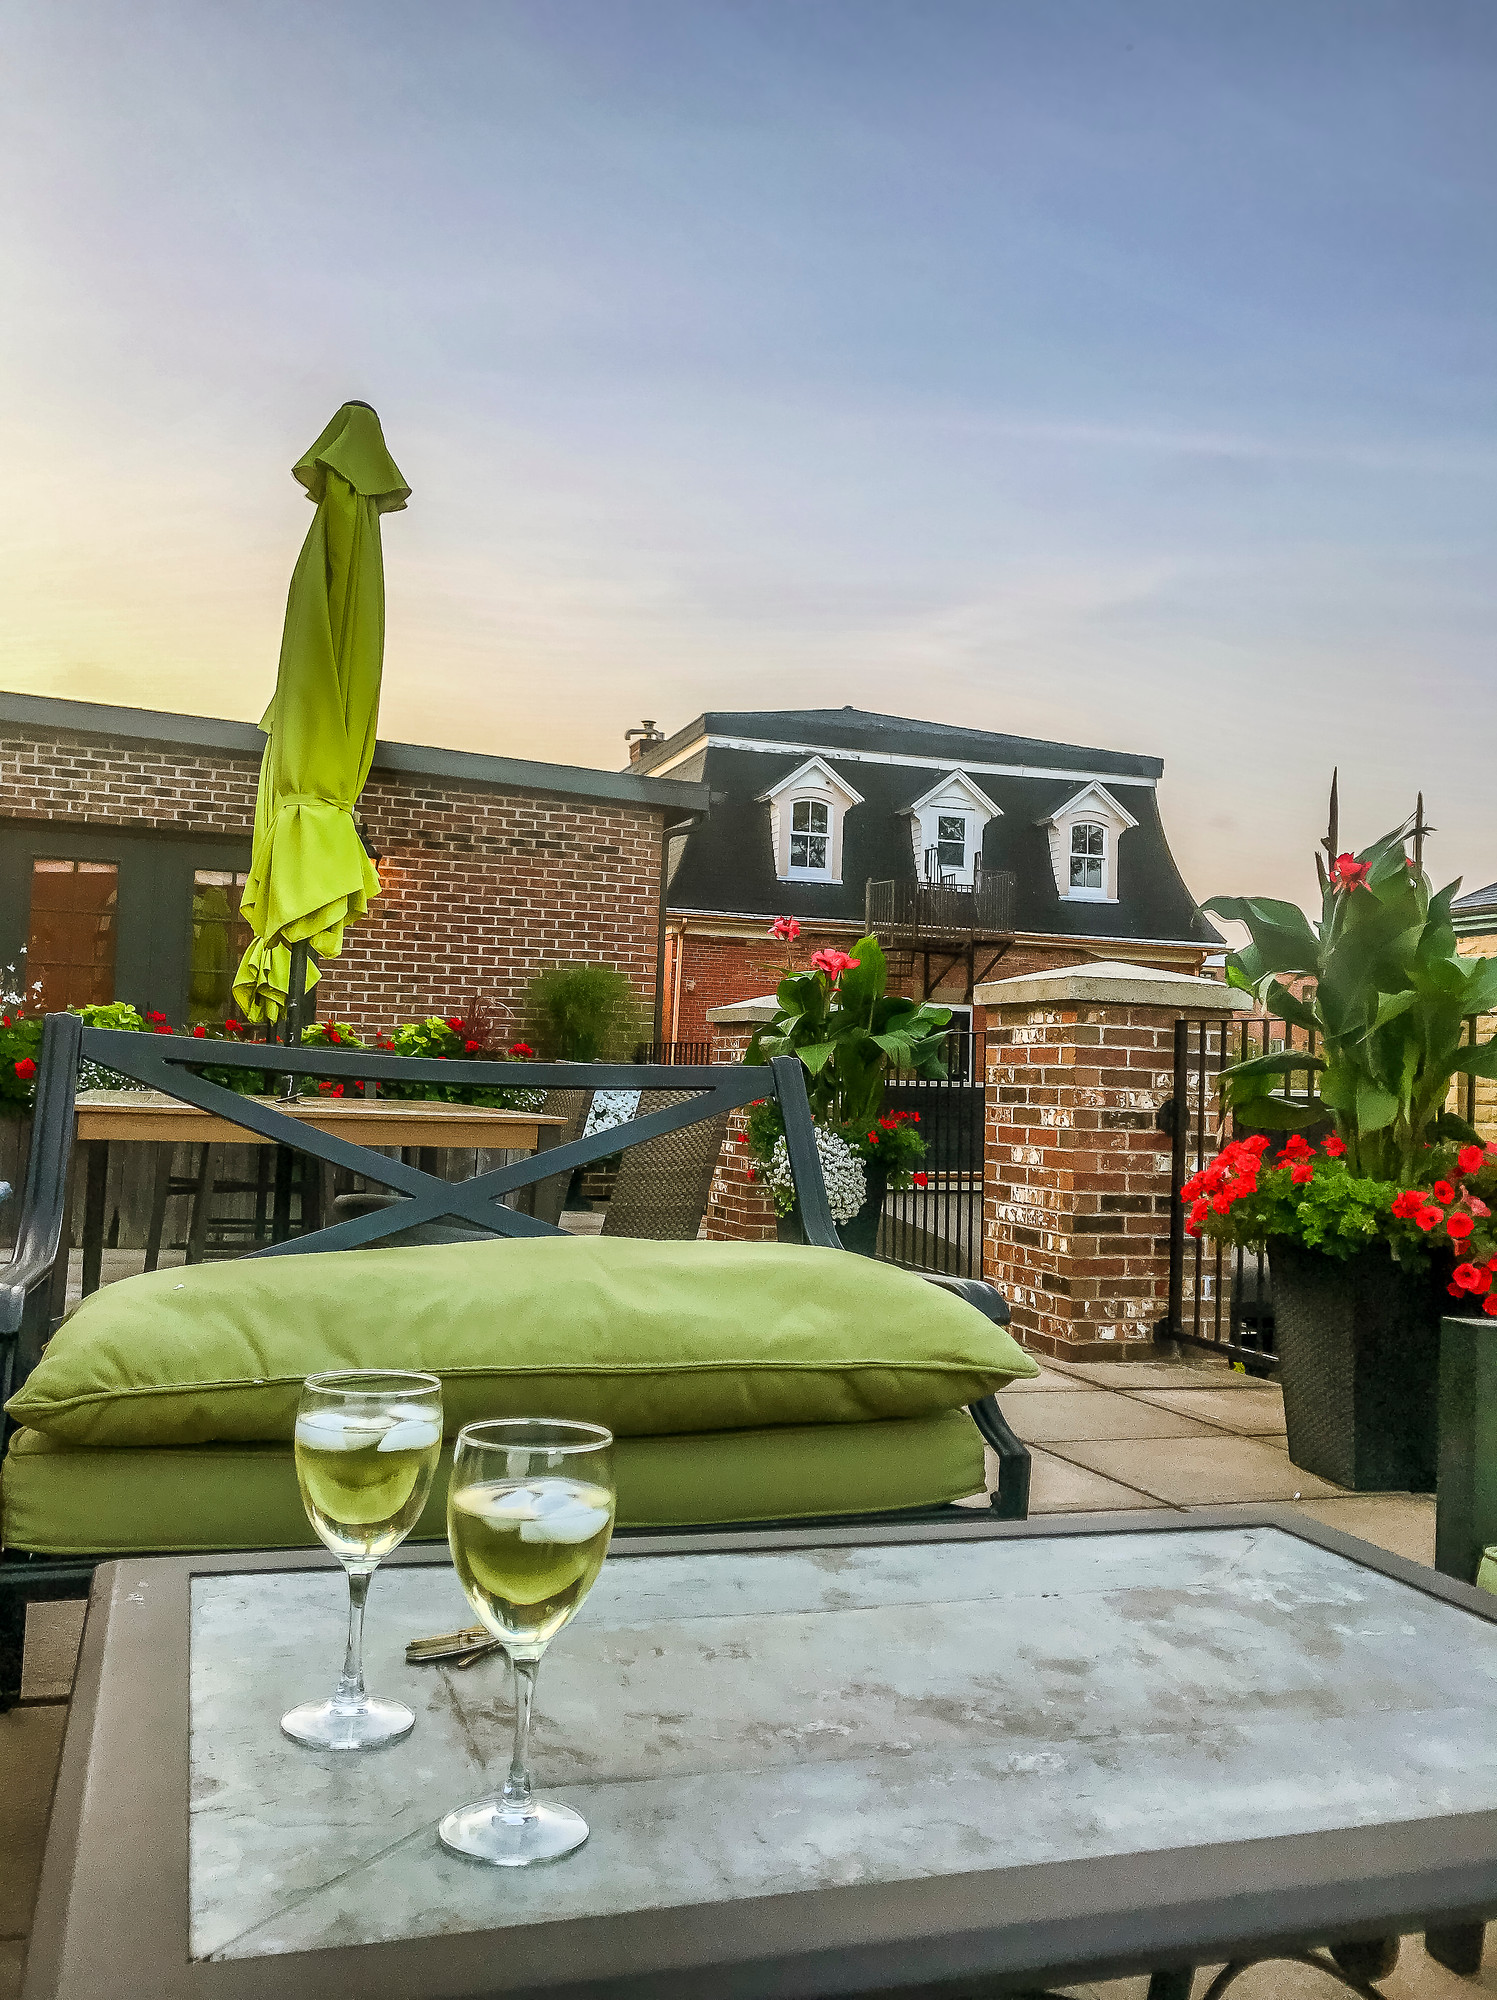 Where to eat in PEI, what to do, and where to stay includes the Great George Hotel in Charlottetown, Prince Edward Island.